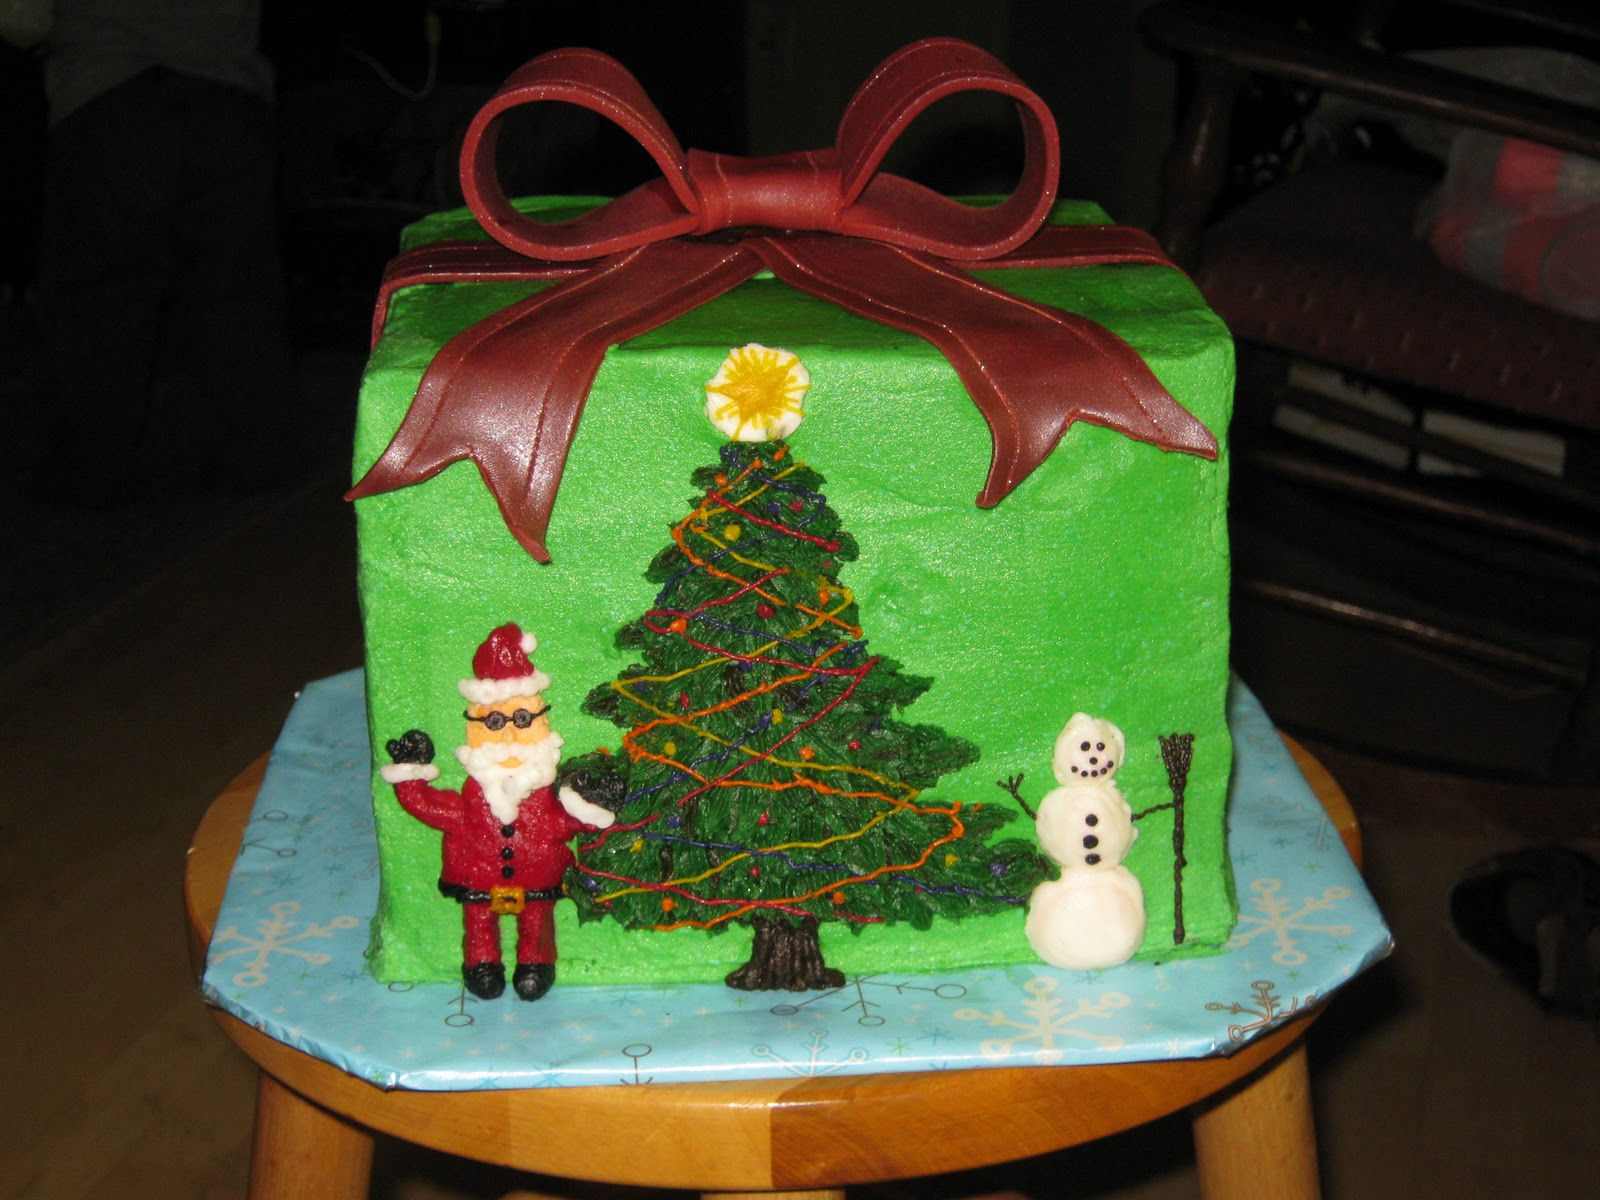 Cake Decorations Montgomery Al : Adam s Best Cake Decorating: Oh Christmas scene, oh ...